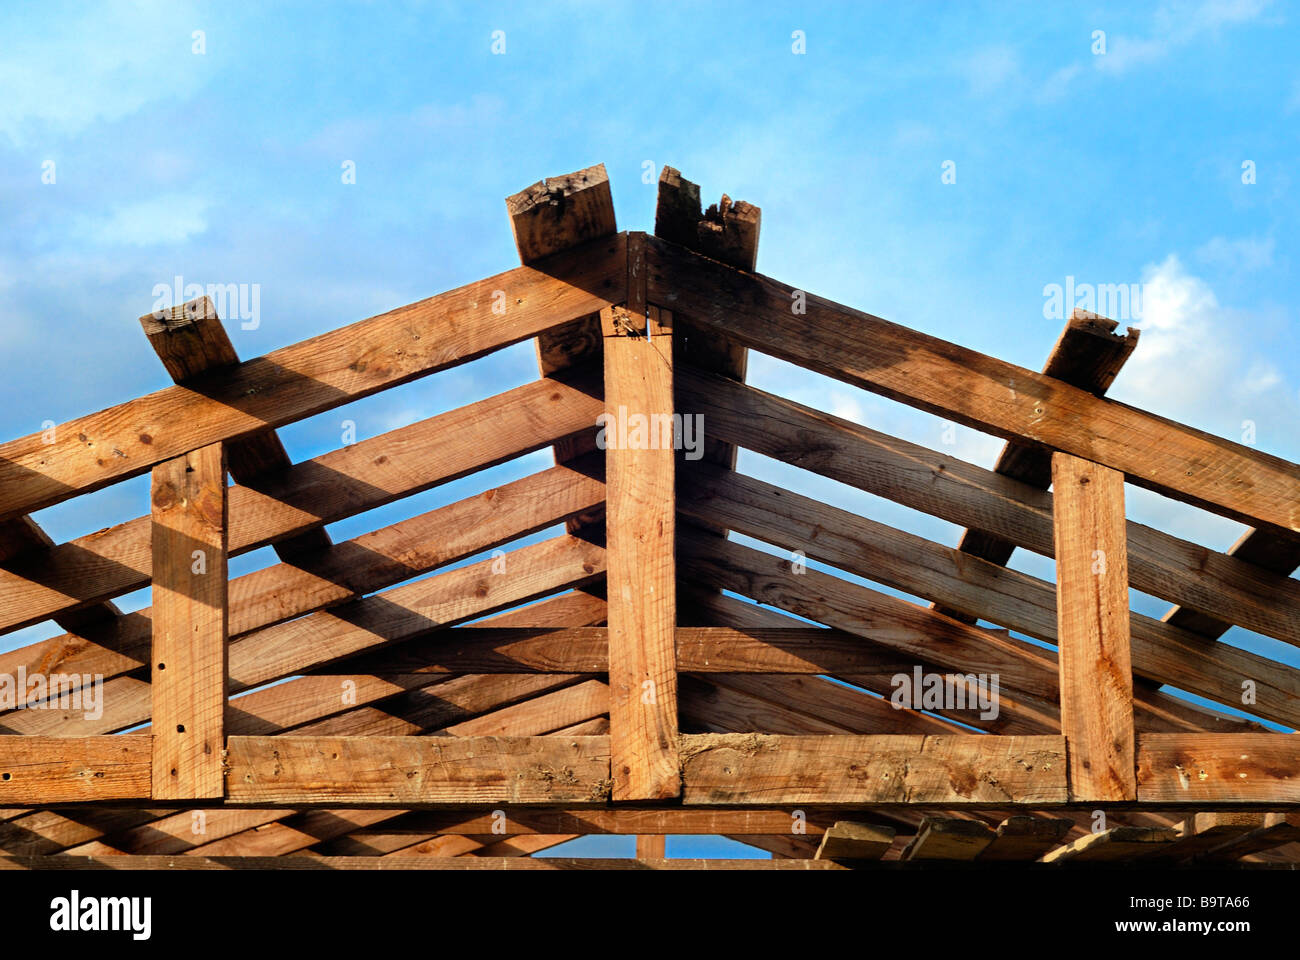 Exposed framework of a barn - Stock Image